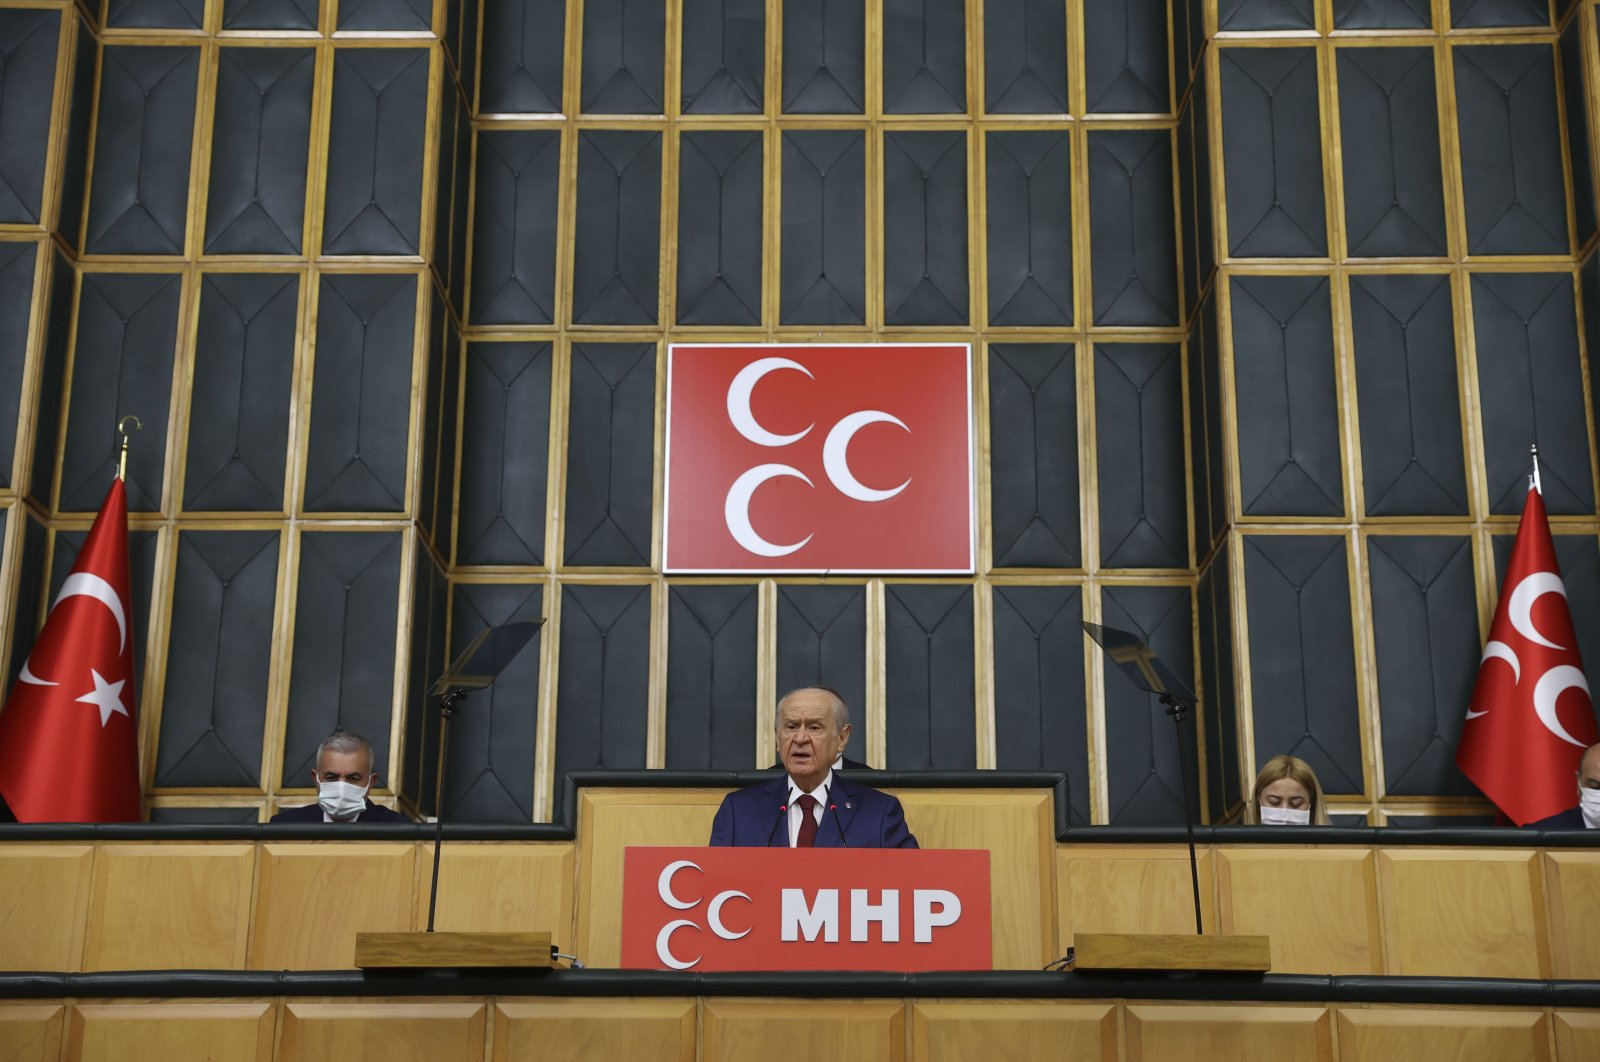 MHP Chairperson Devlet Bahçeli speaks at his party's parliamentary group meeting in Ankara, Turkey, April 20, 2021. (AA Photo)